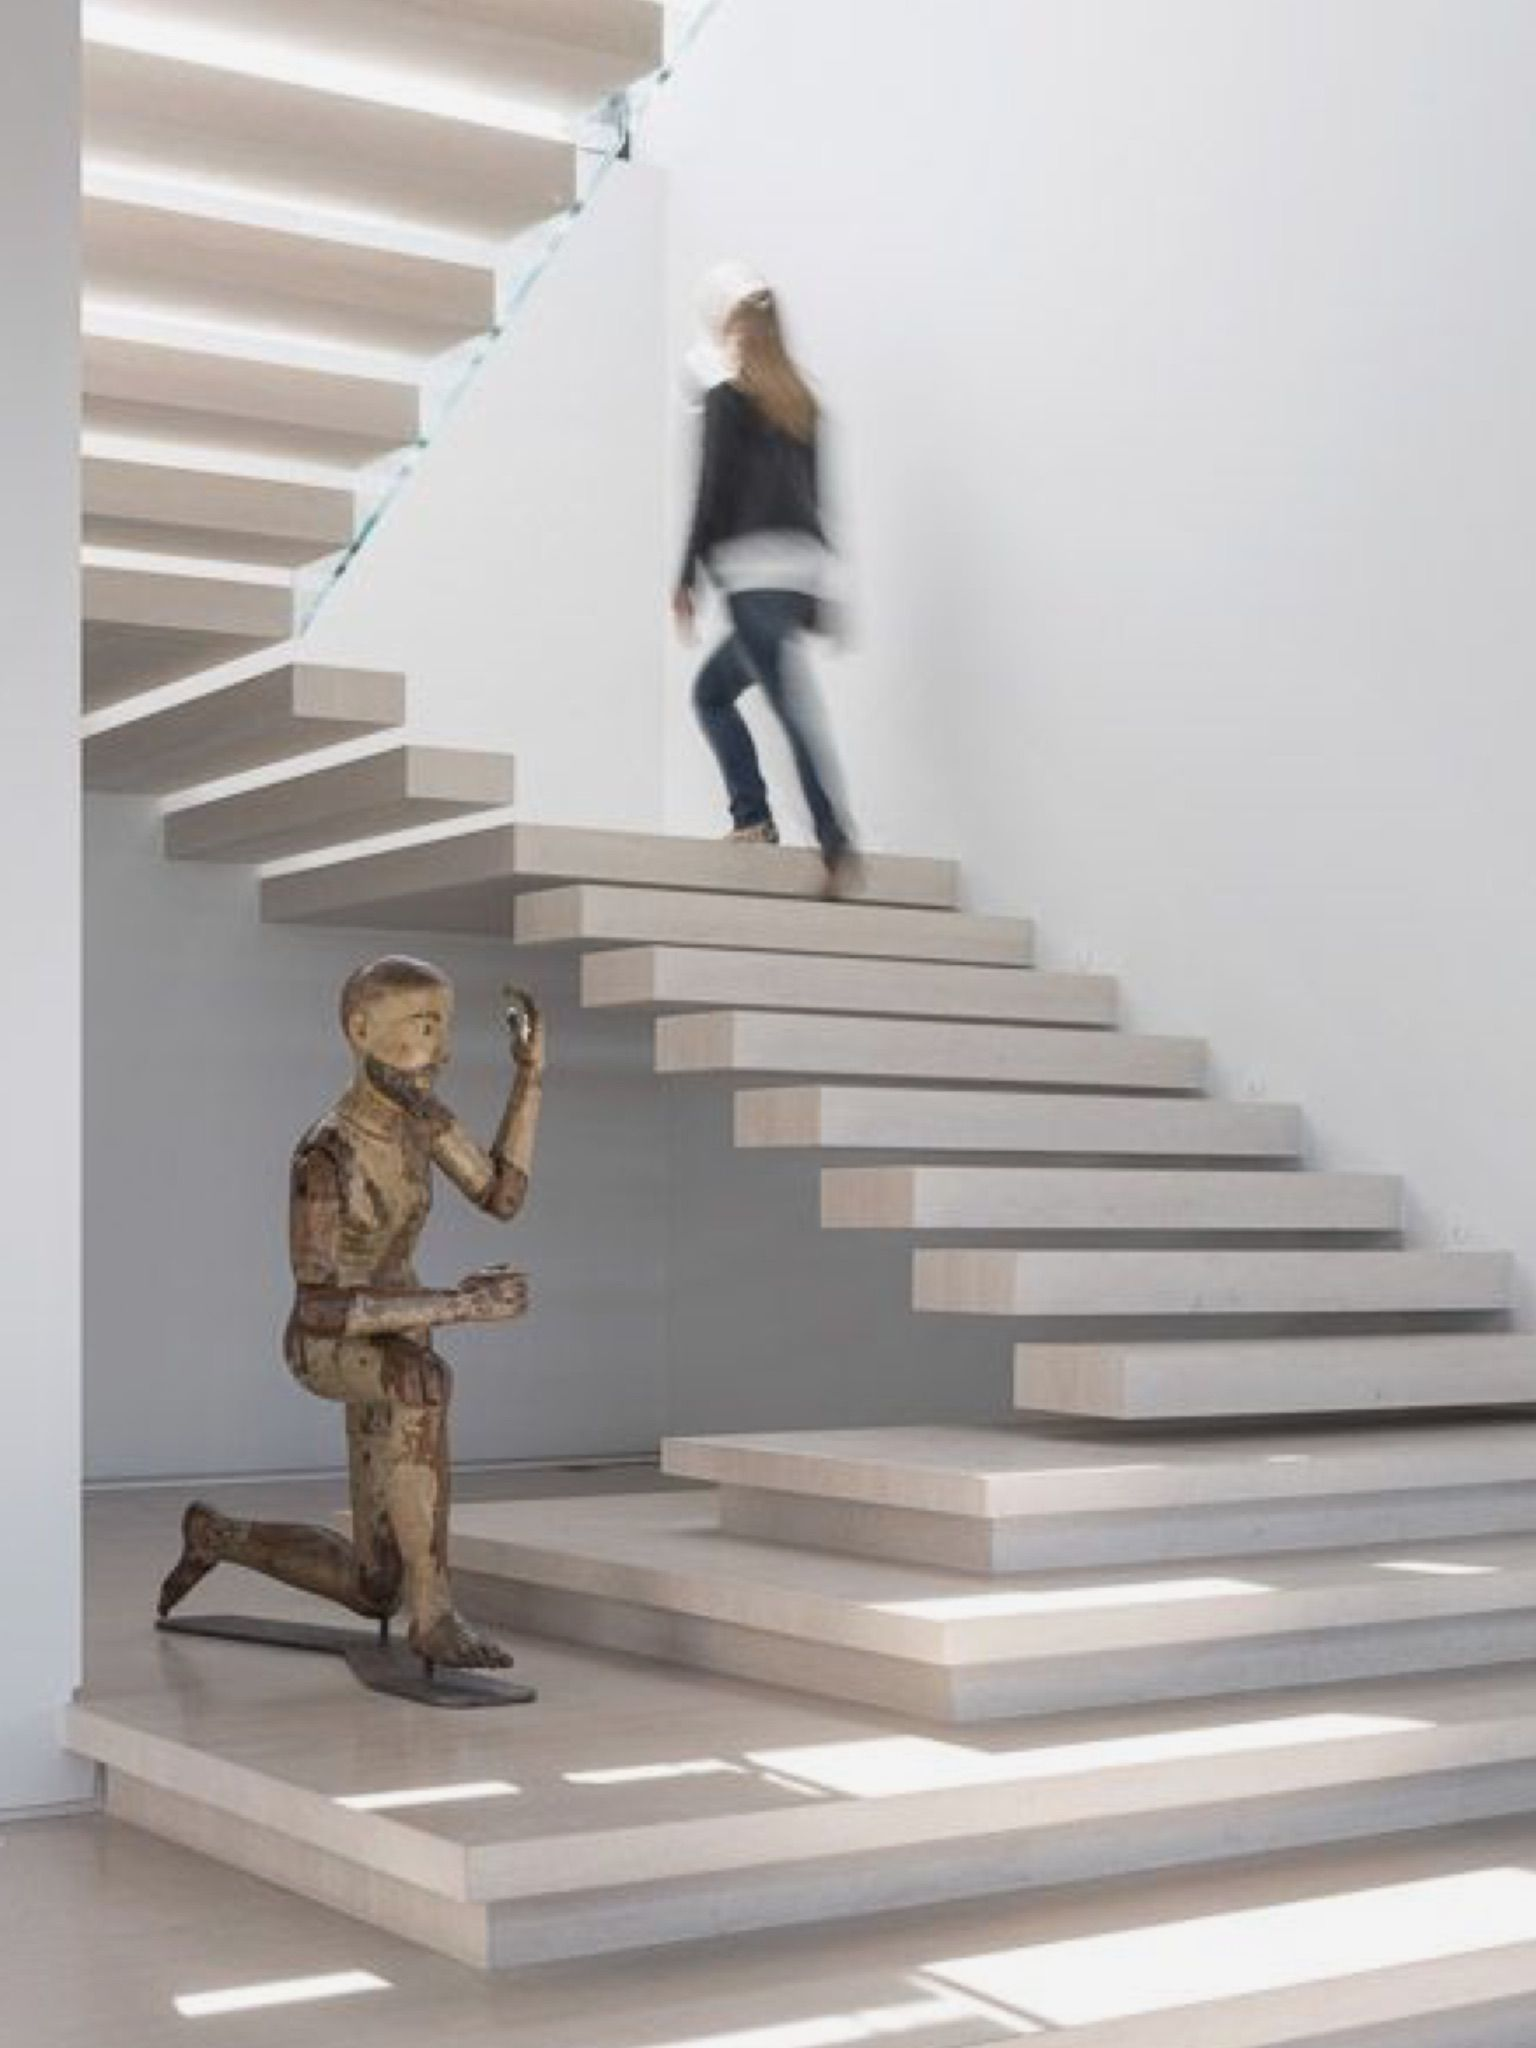 Staircase design interior curved stairs architecture also best images in hand railing modern rh pinterest